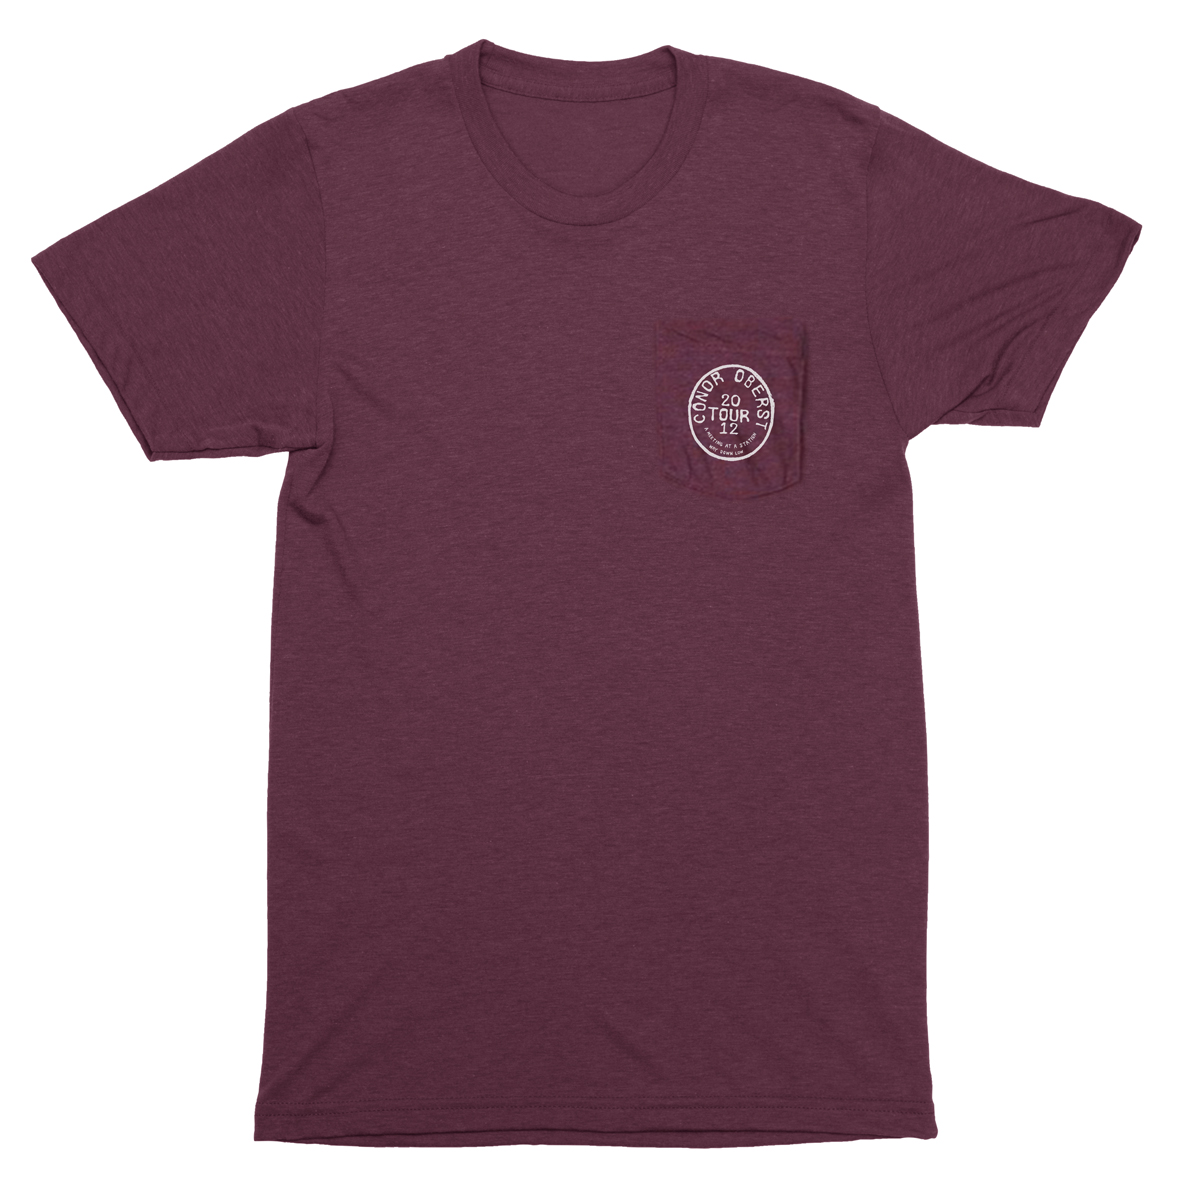 2012 Tour Stamp Pocket Tee - Conor Oberst